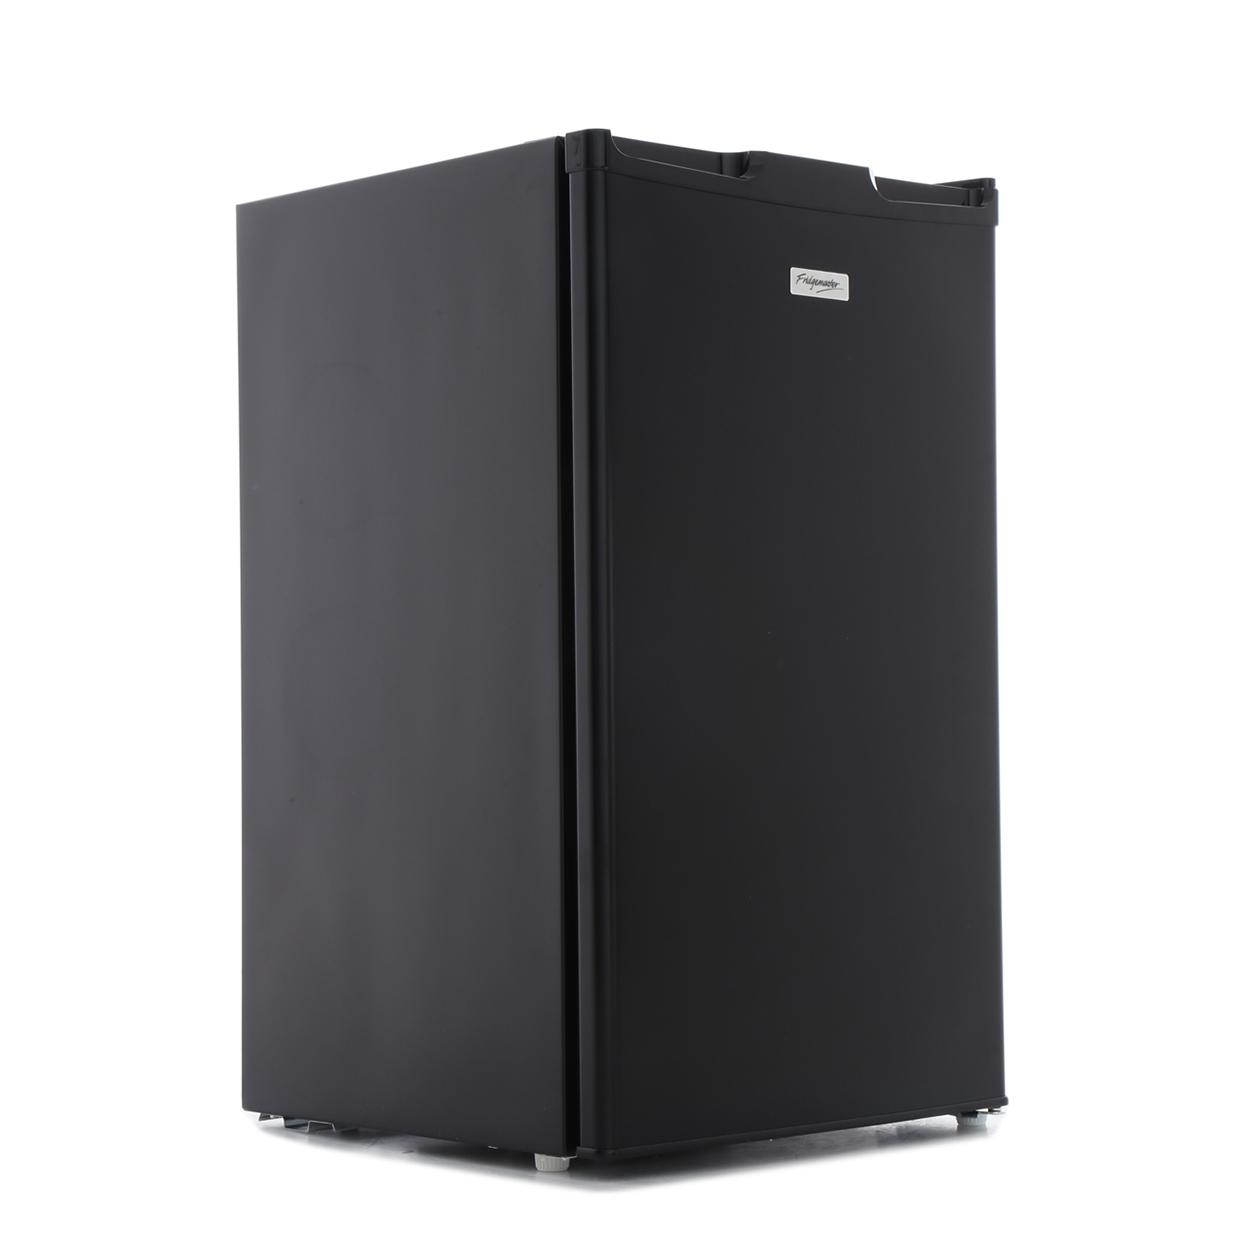 Fridgemaster MUL49102B Larder Fridge